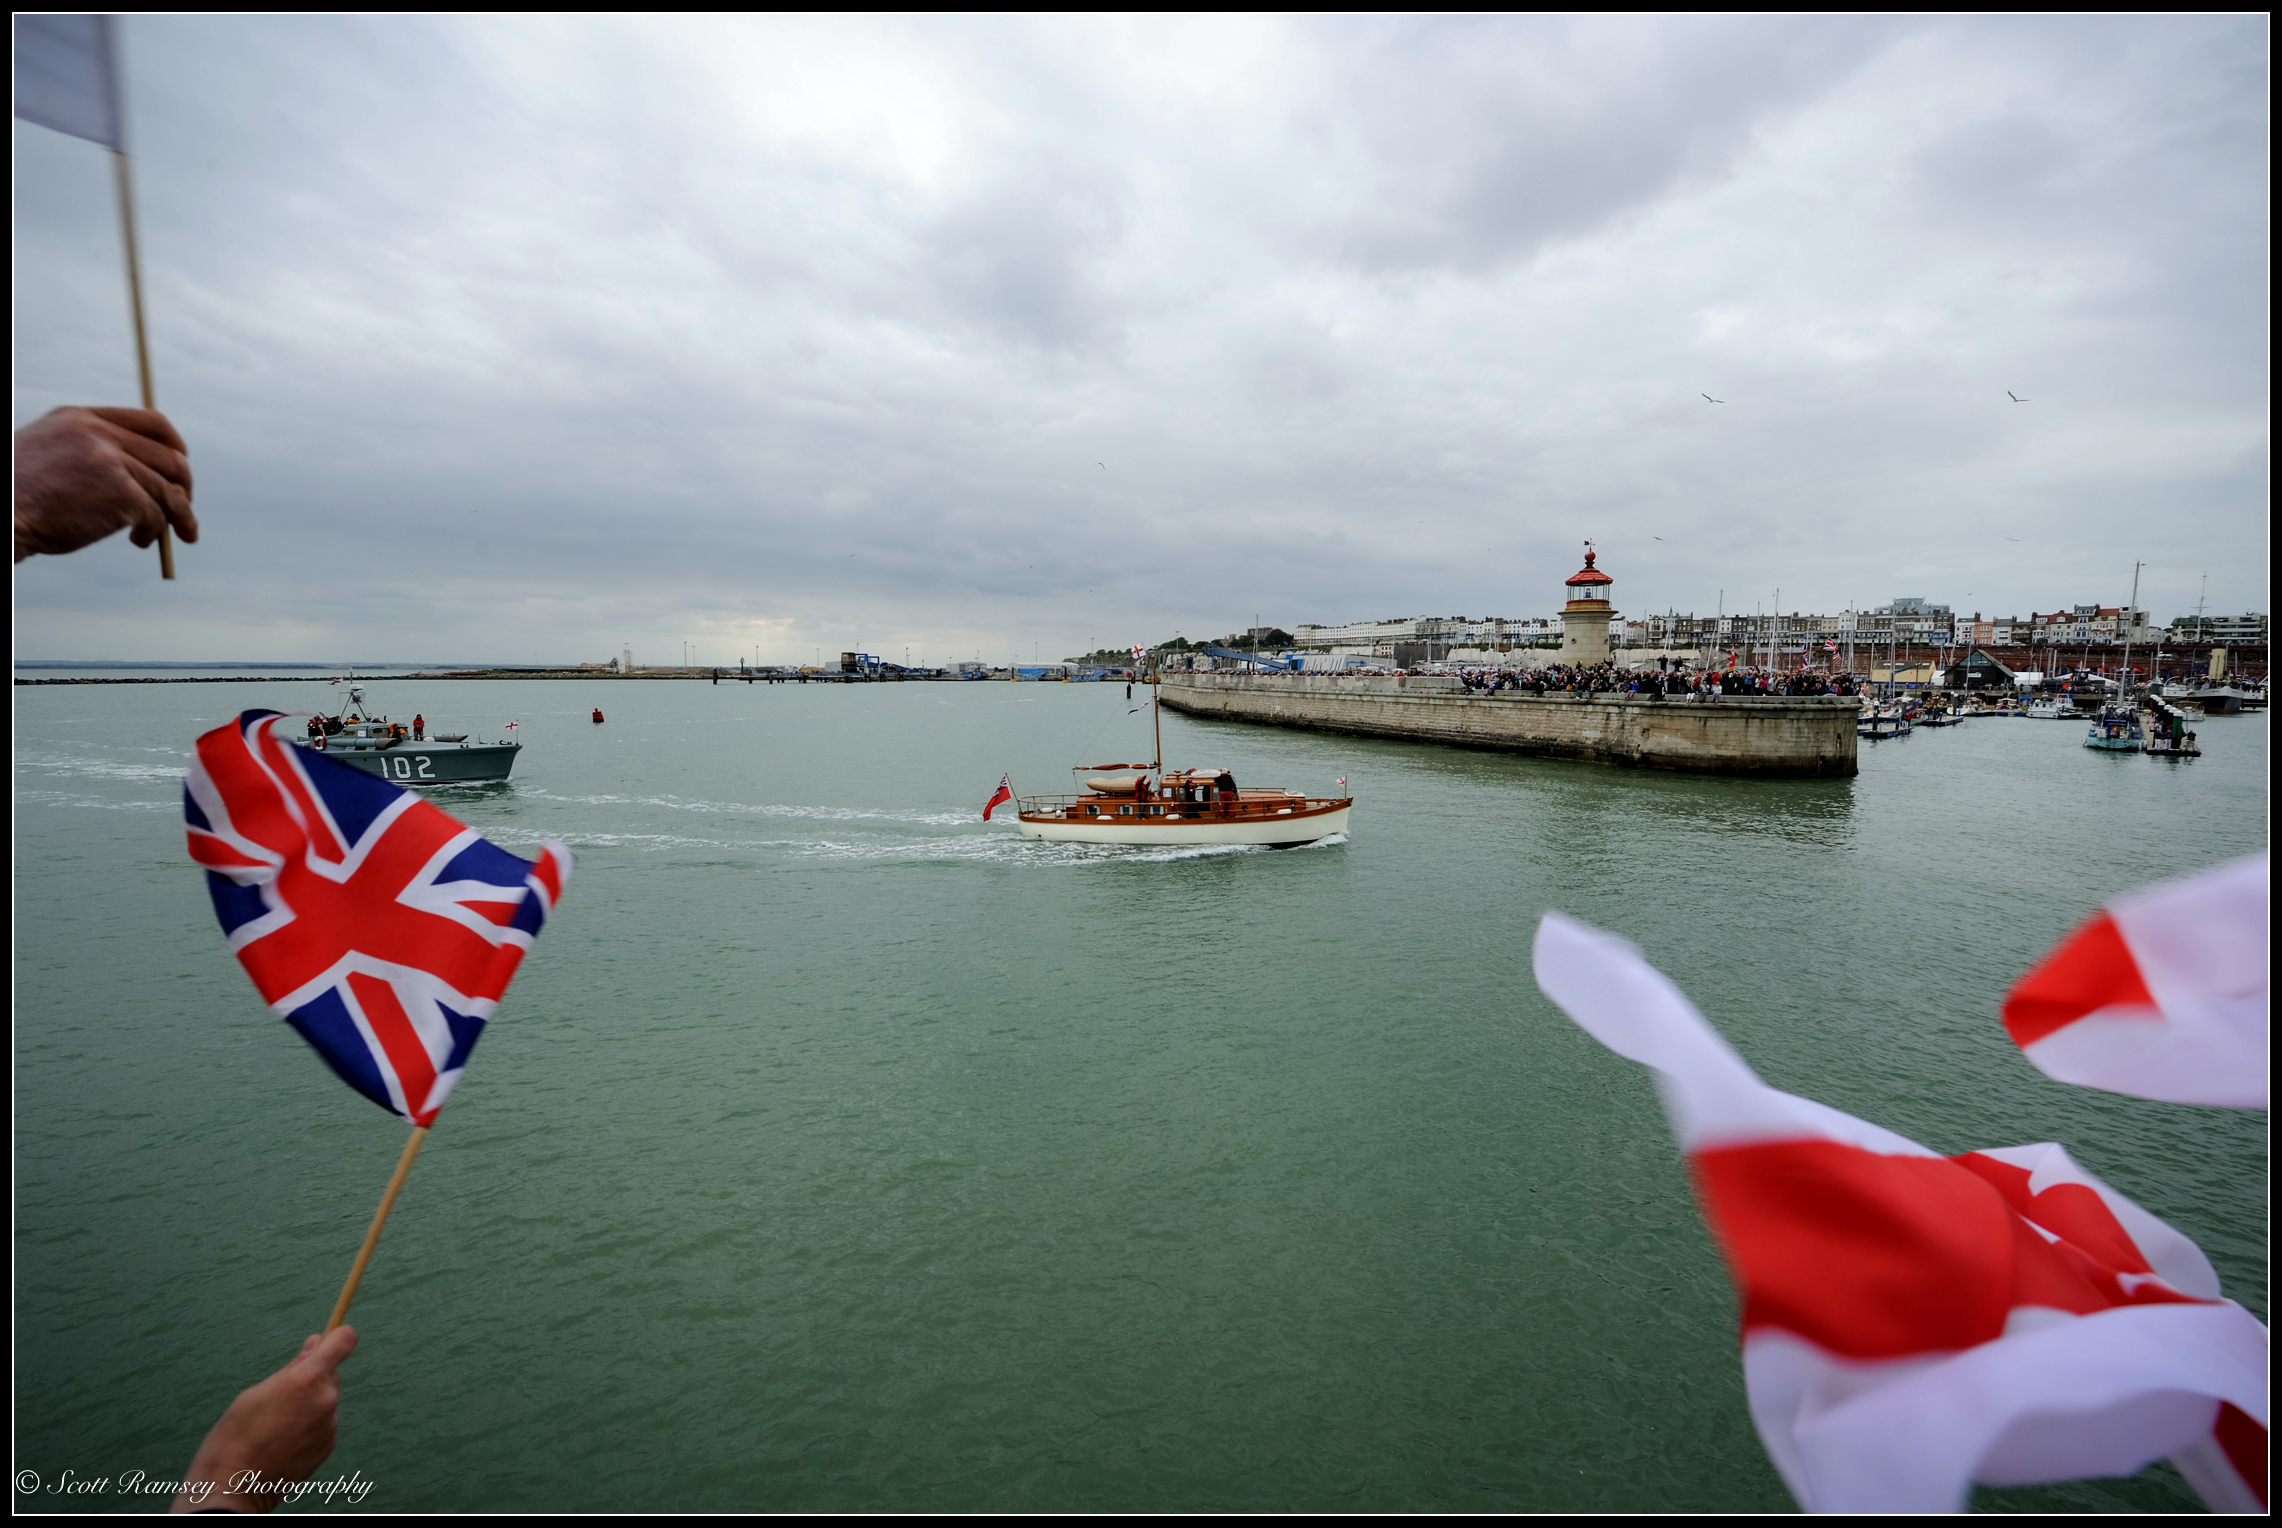 Two of the originalDunkirk Little Ships, the1937 Motor Torpedo Boat 102 and Hilfranora 1935 motor yacht, return to the Royal Harbour Marina Ramsgate, Kent, UKduring a weekend of events to commemorate the 75th anniversary of Operation Dynamo. ©Scott Ramsey Photography